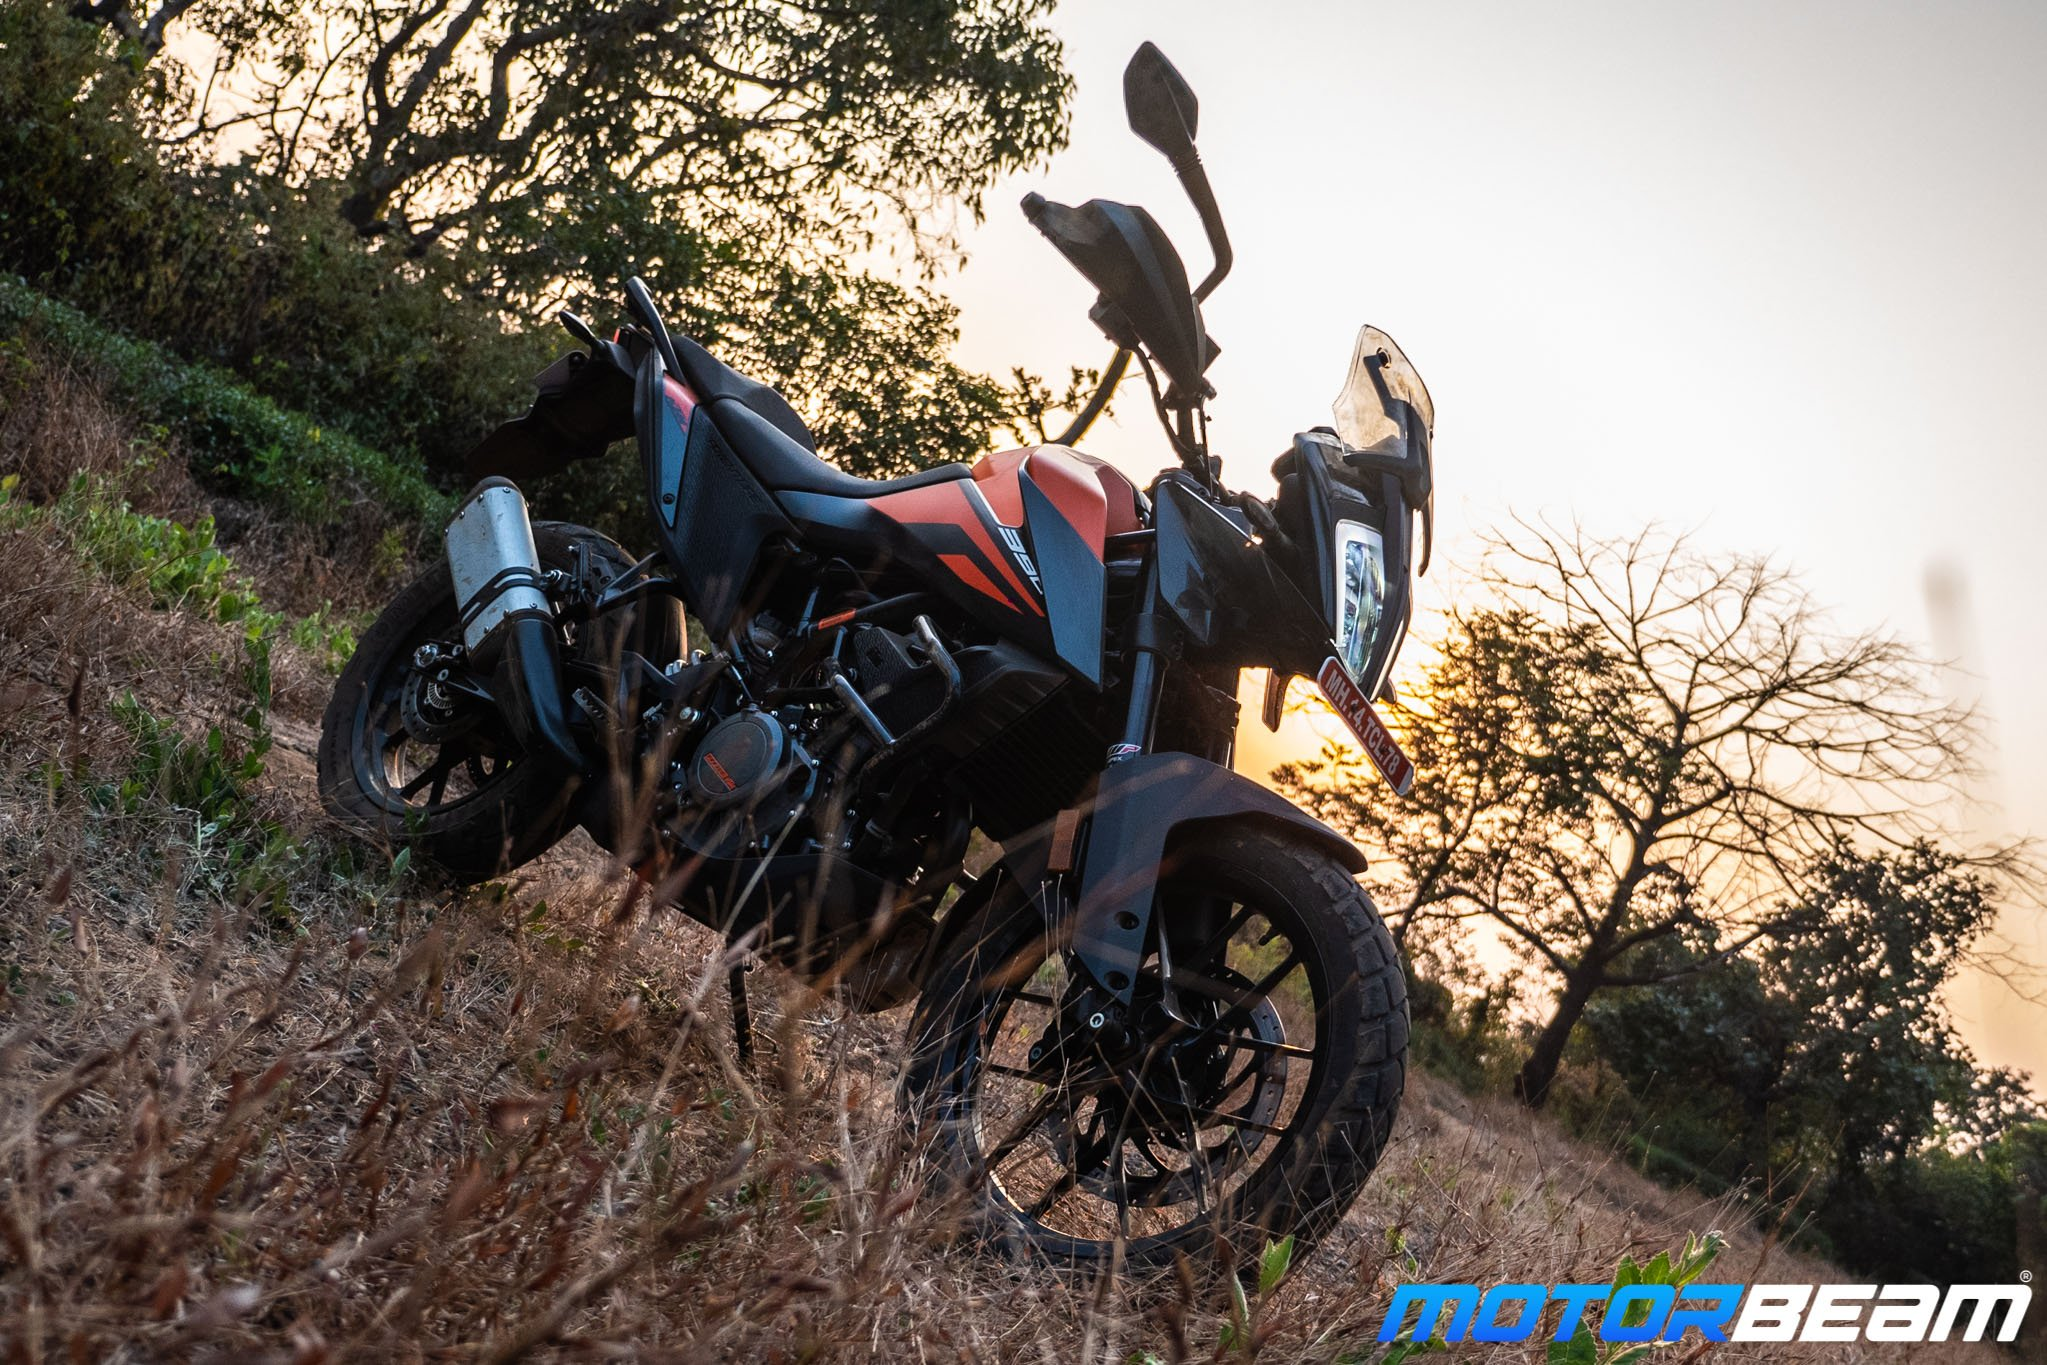 KTM 390 Adventure Test Ride Review